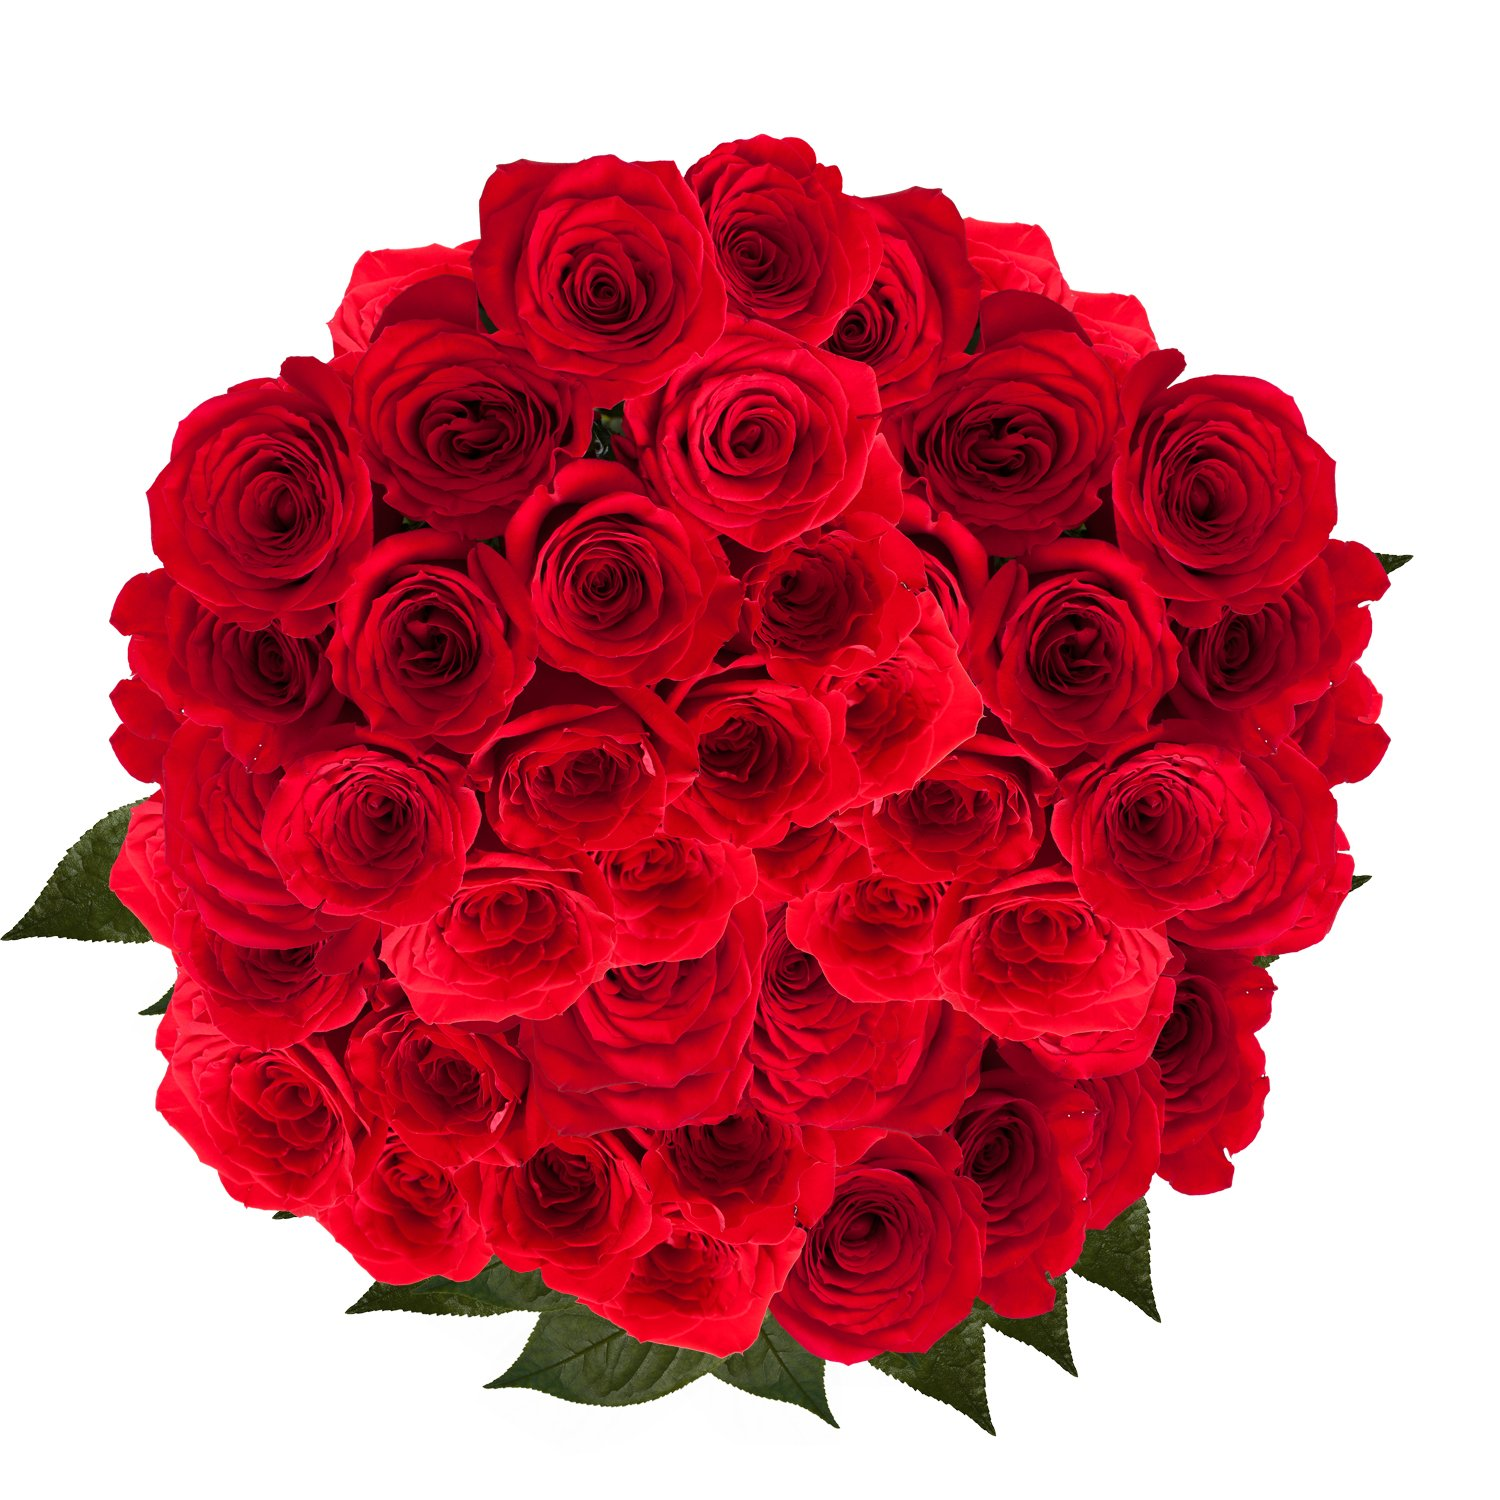 GlobalRose Red Roses - Order 100 Fresh Flowers- Express Delivery by GlobalRose